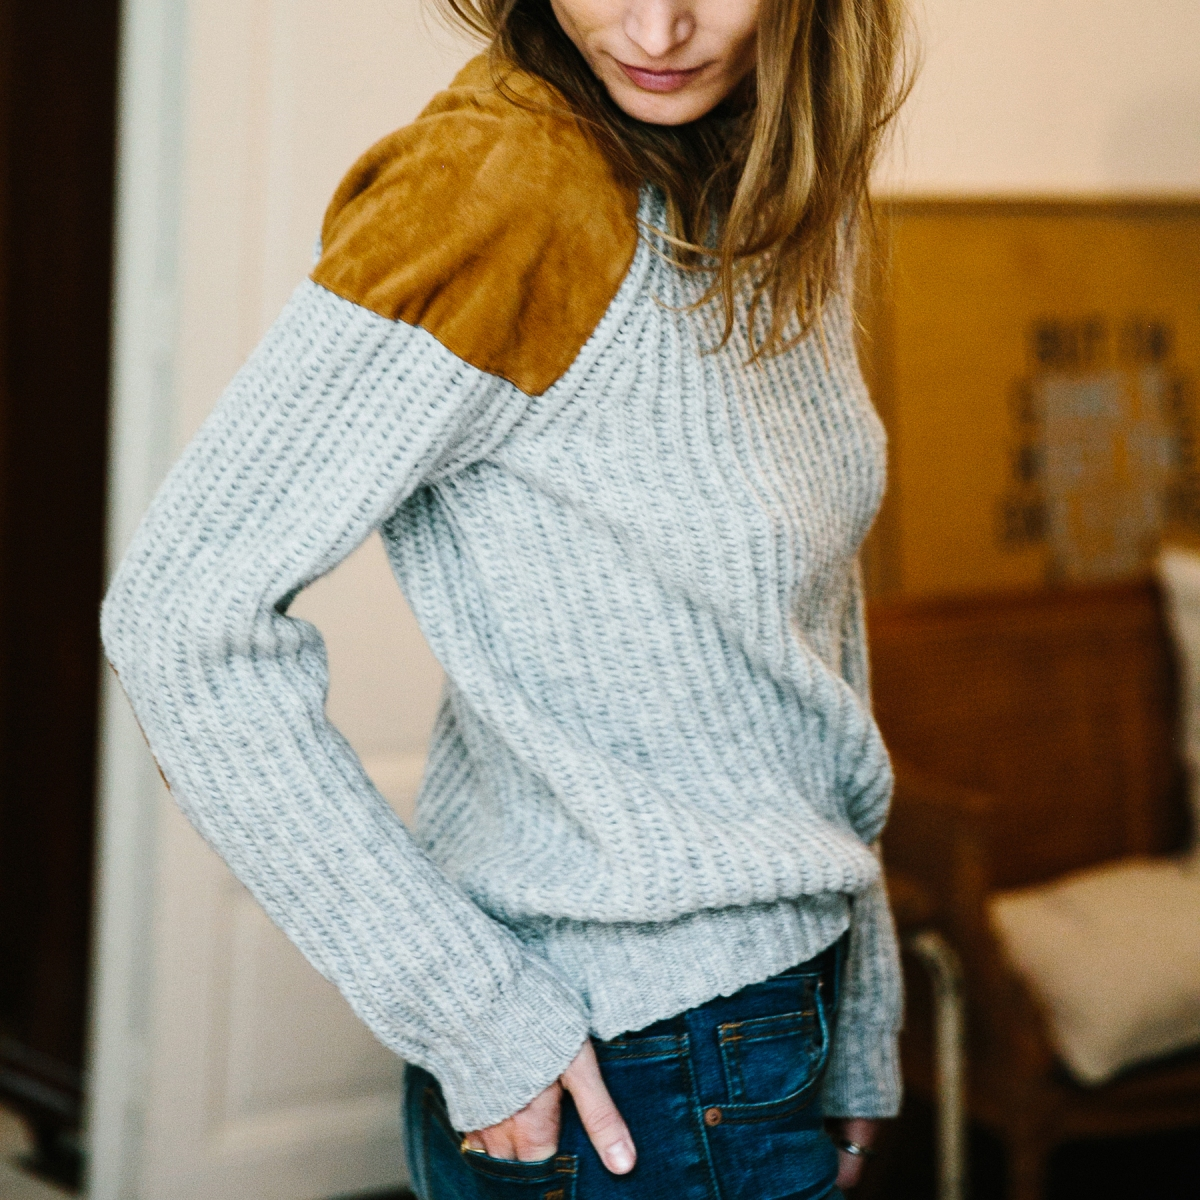 How To Care For Your Sweaters: 10 Tips | Madewell